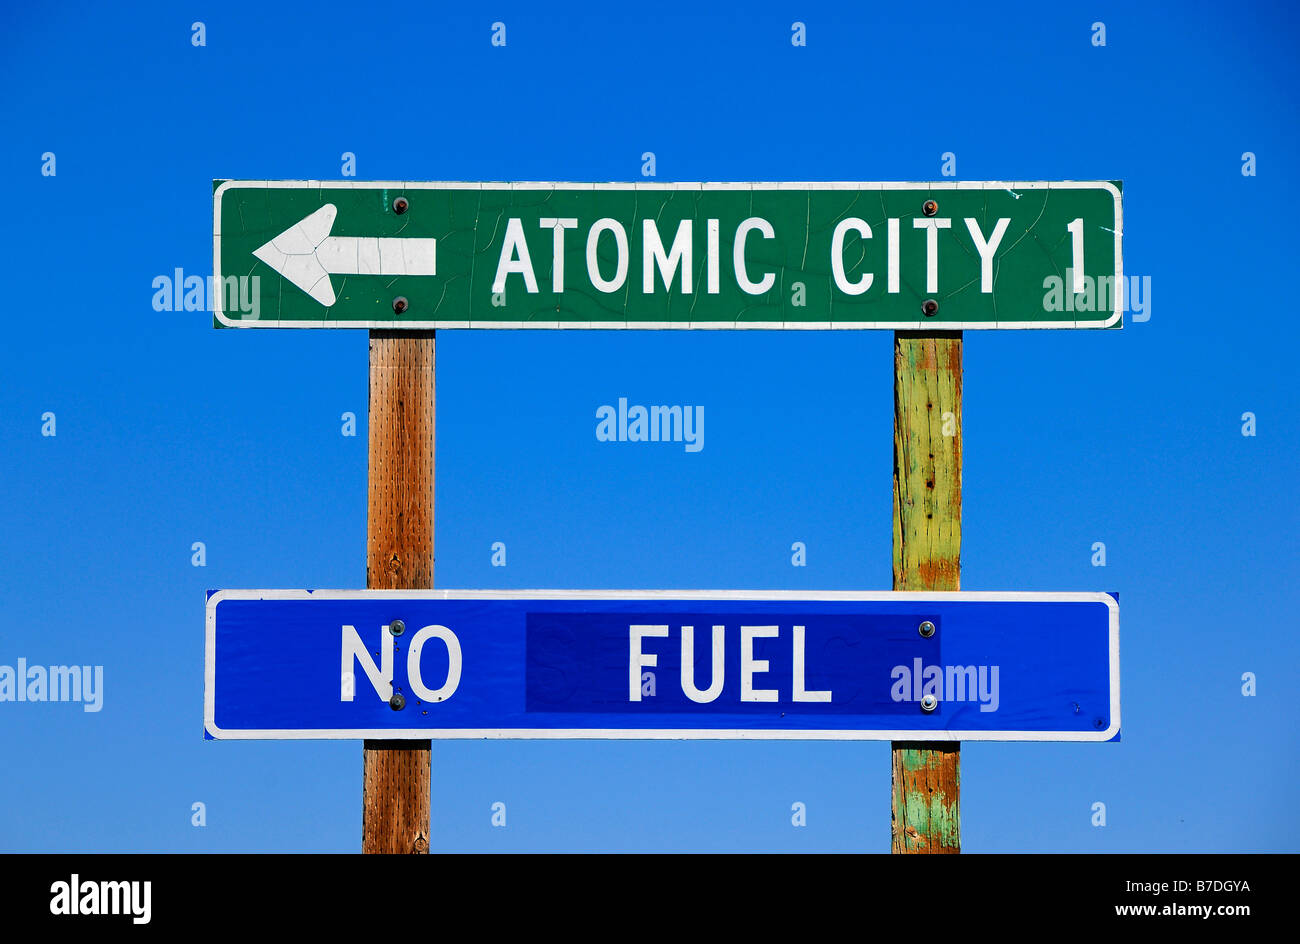 Humorous road sign near the town of Atomic City in Idaho, United States of America - Stock Image